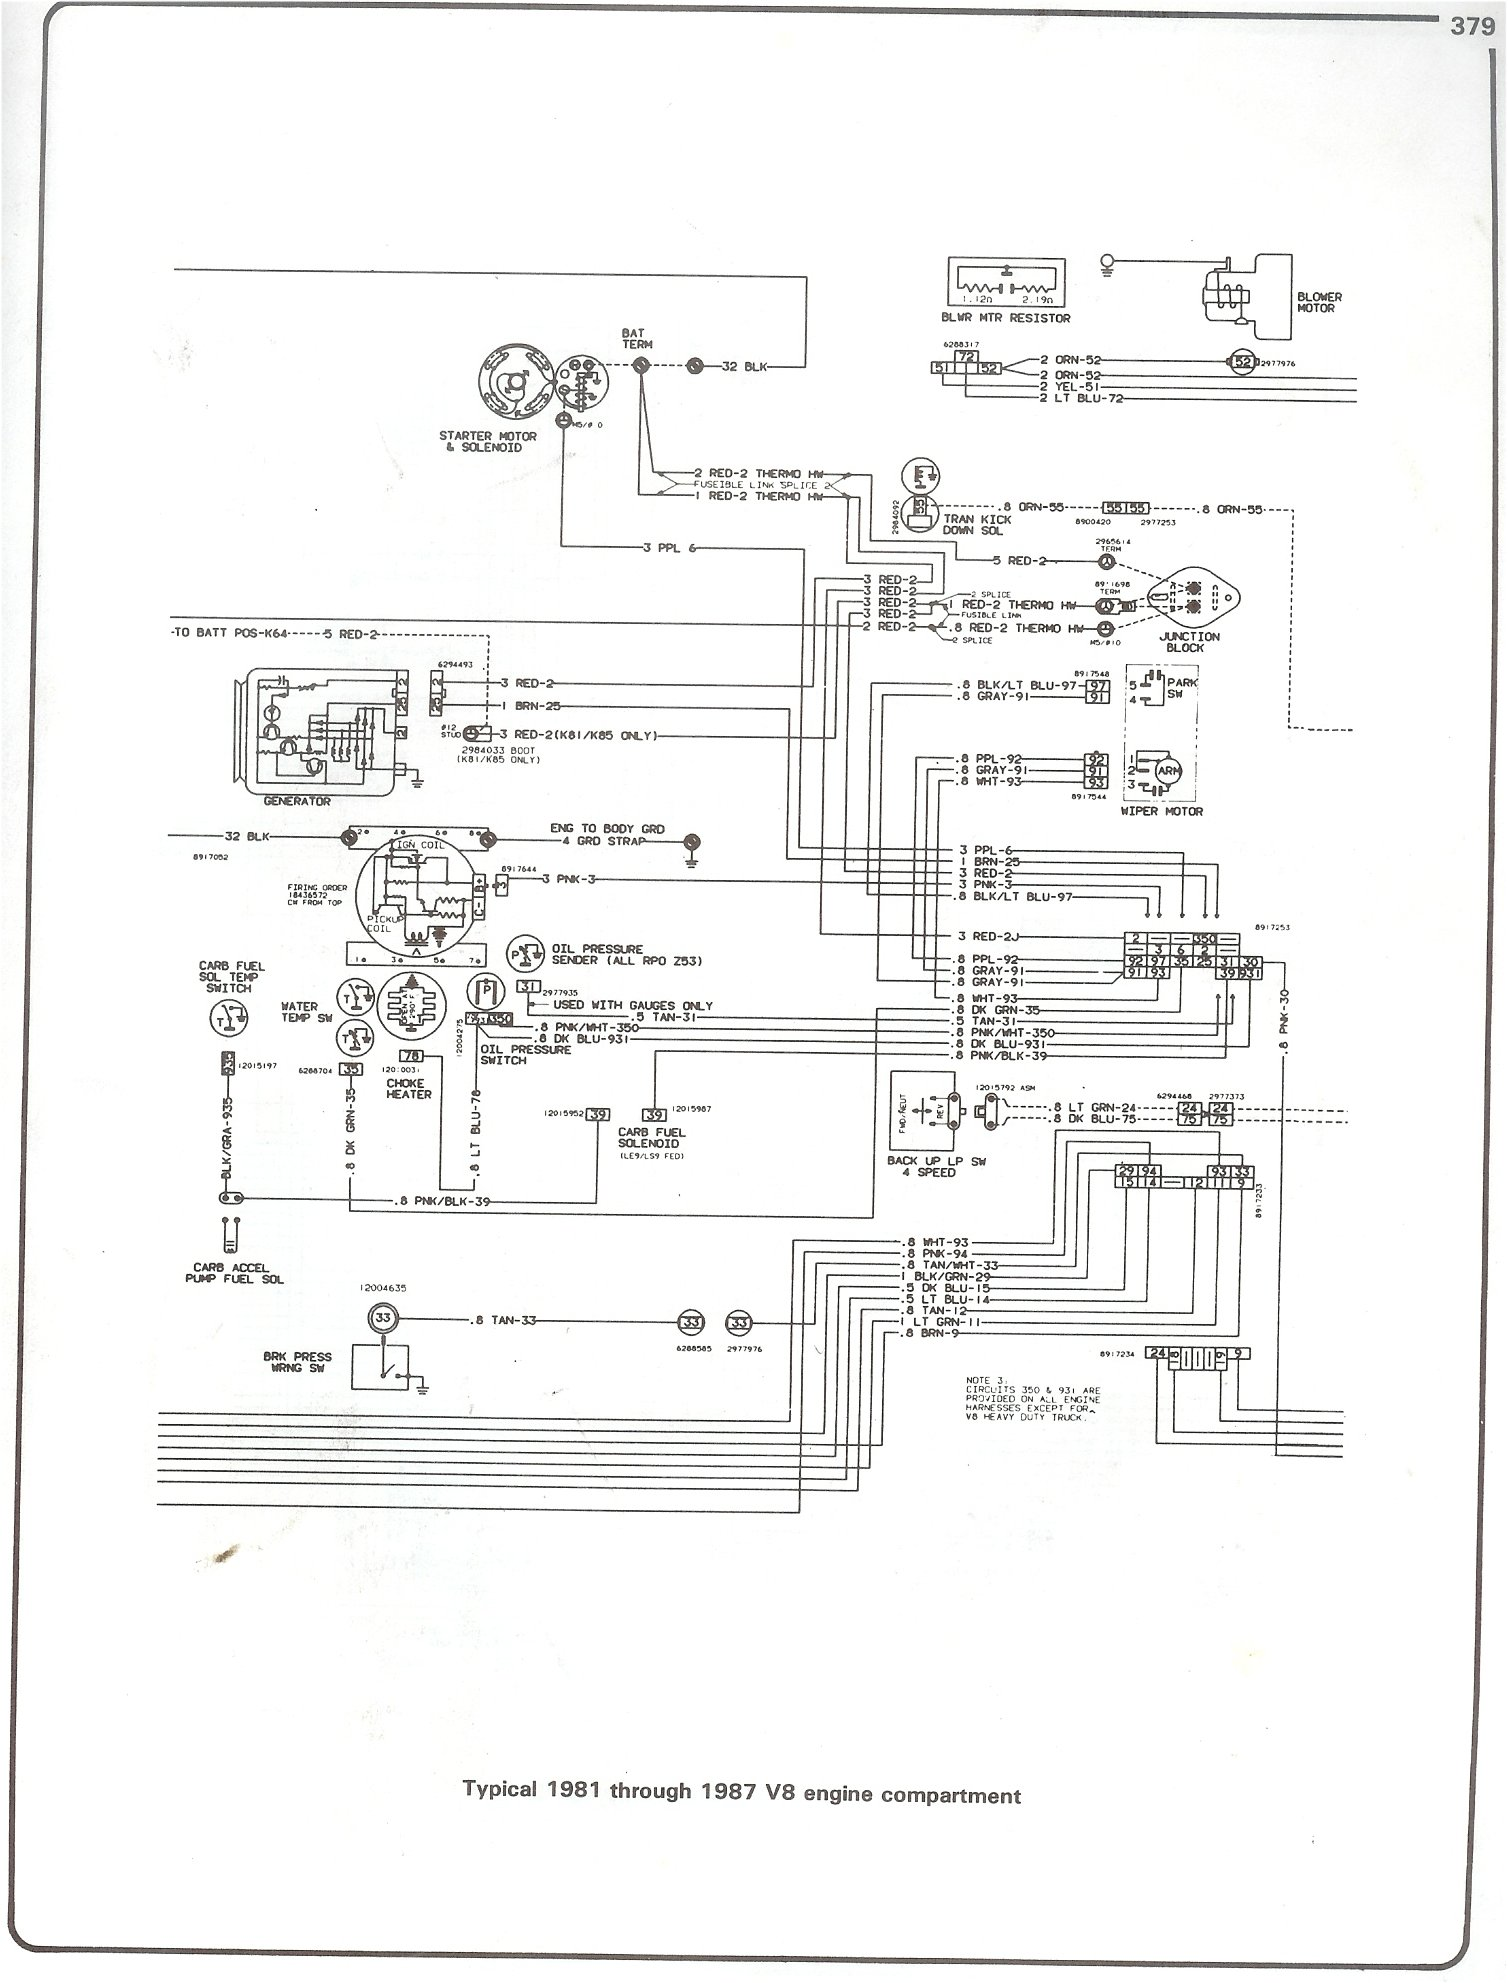 81 87_V8_engine complete 73 87 wiring diagrams wiring diagrams for chevy trucks at gsmx.co